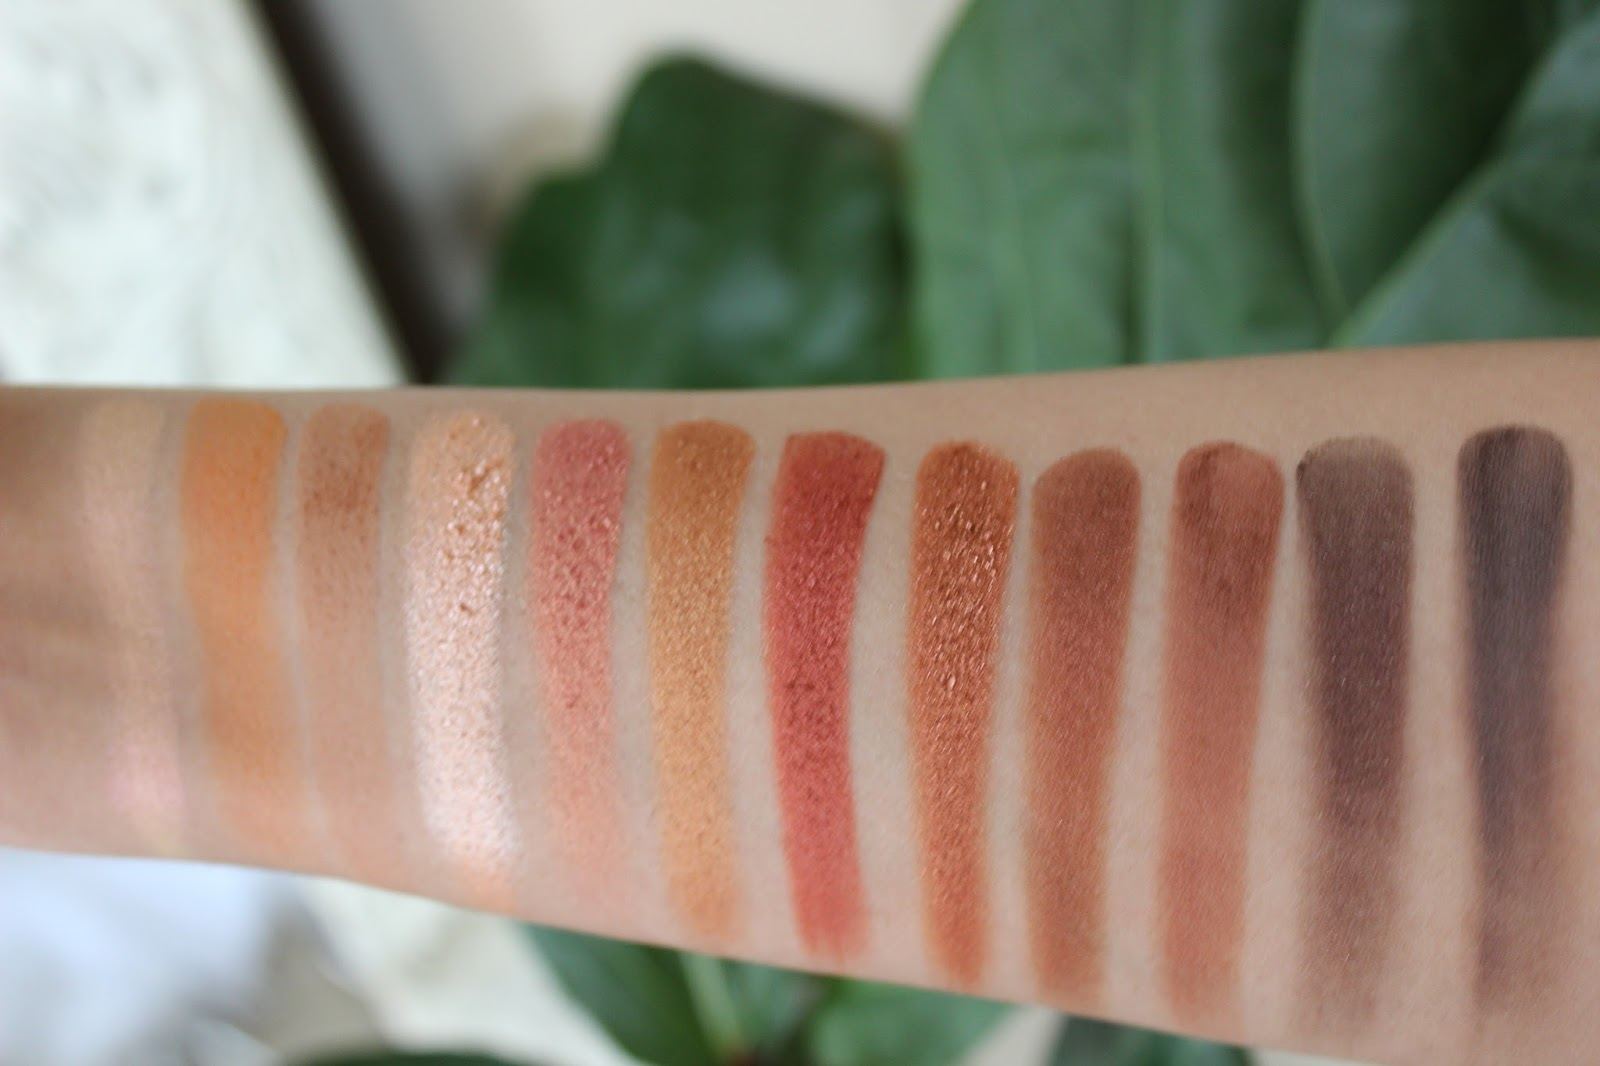 The Nubian Eyeshadow Palette by Juvia's Place #4